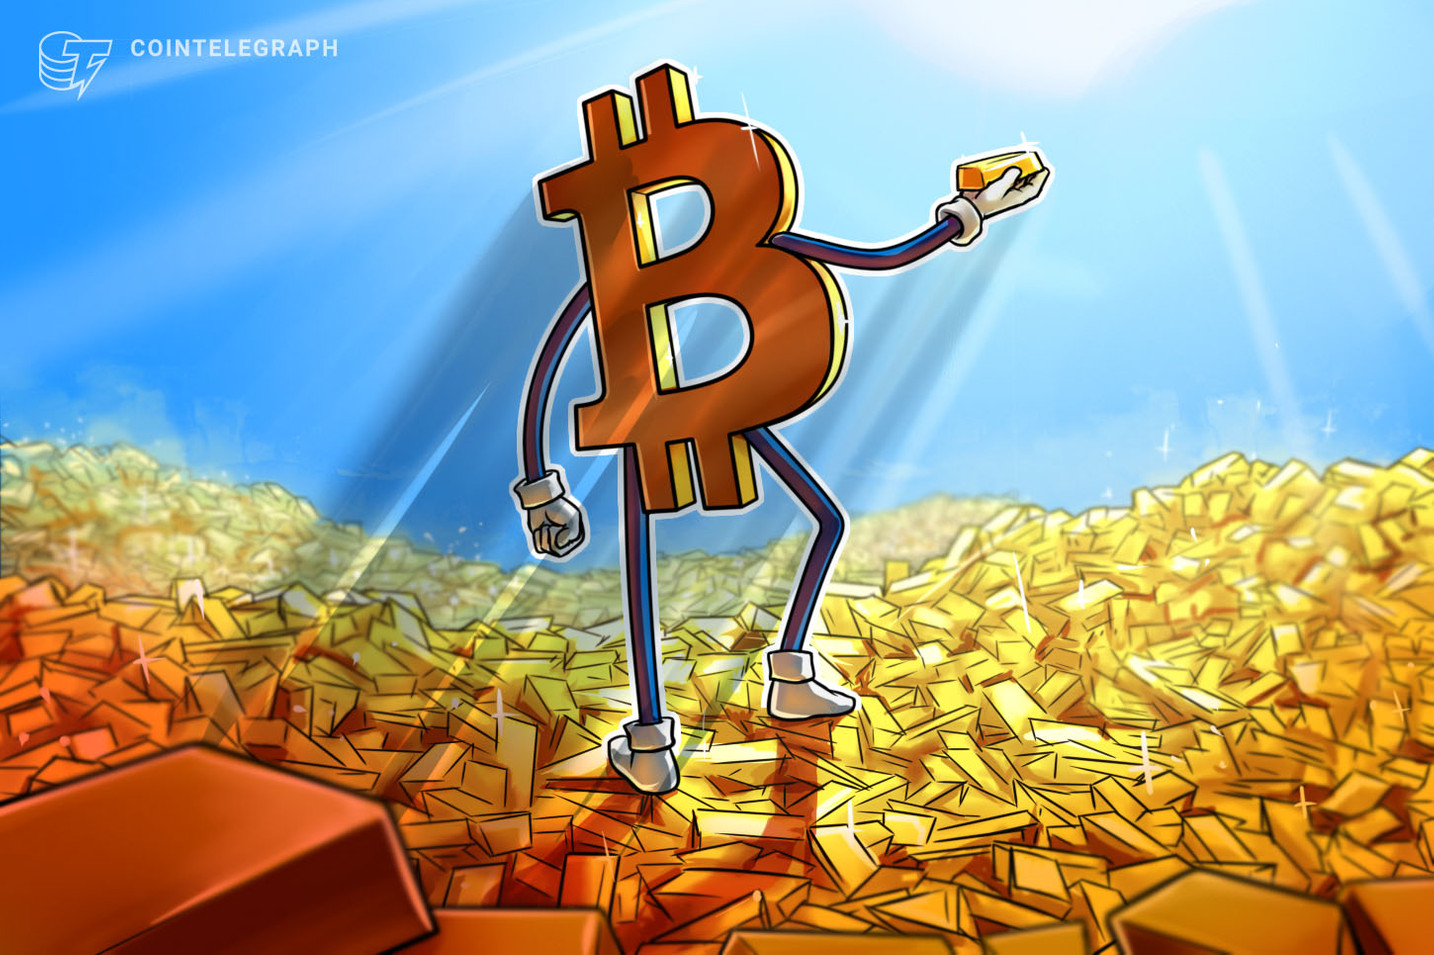 Bitcoin slips below $39K as Fed sends gold to 6-week lows